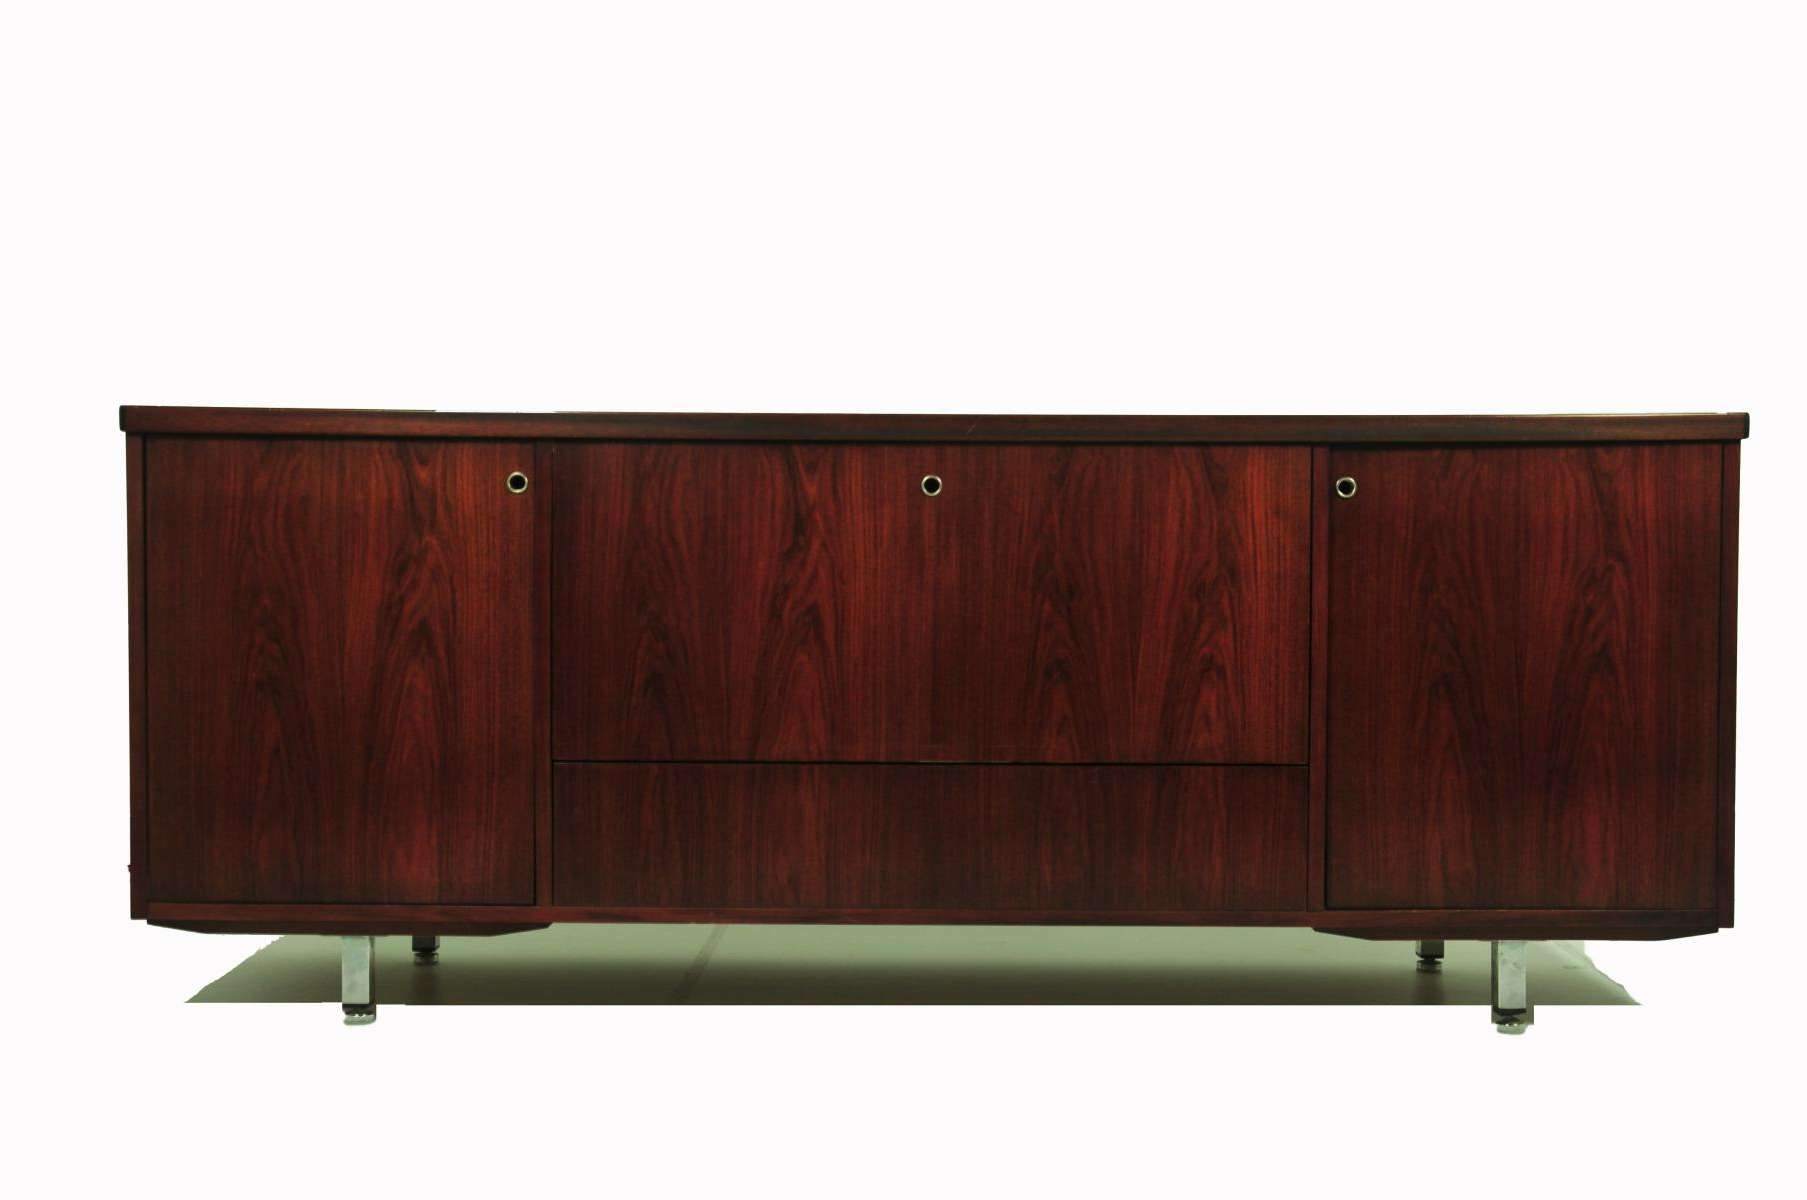 Vintage Rosewood Sideboard With Bar Cabinet For Sale At Pamono Inside Sideboards Bar Cabinet (View 4 of 20)